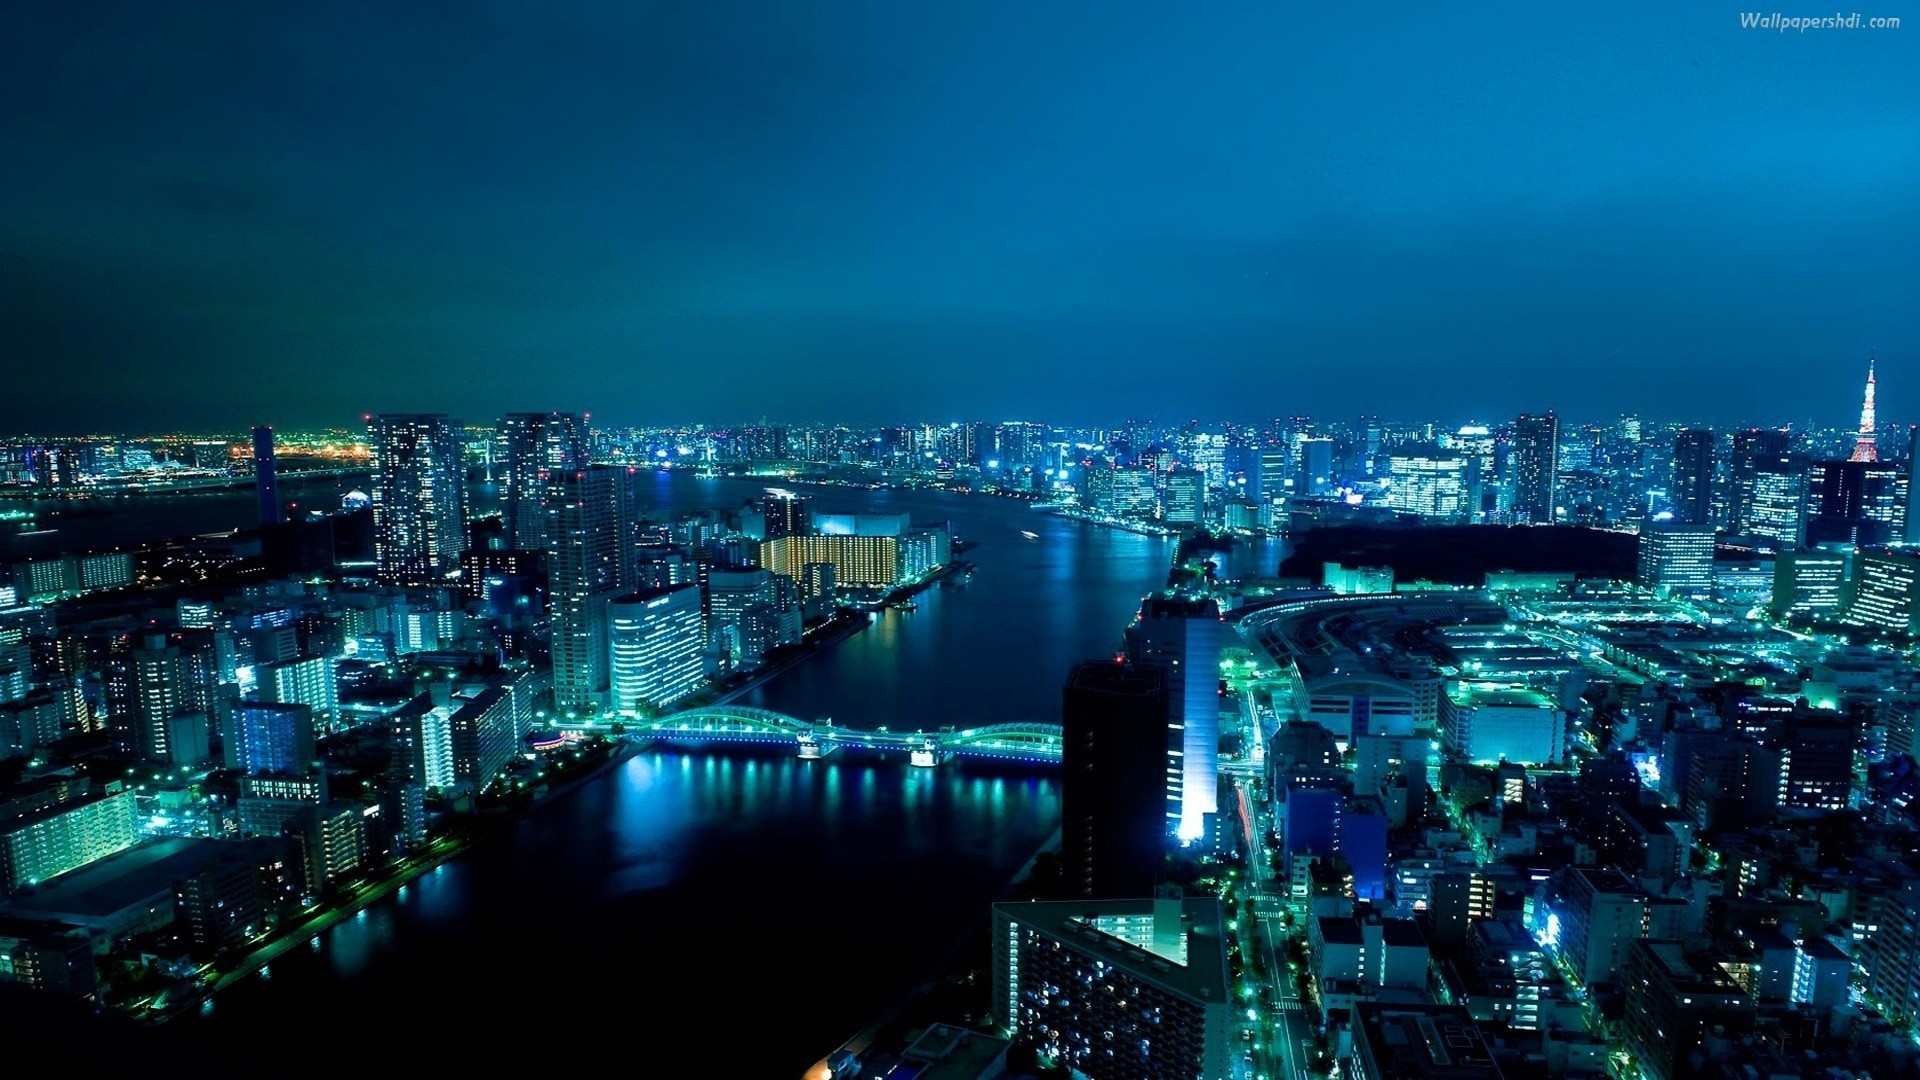 16 Gorgeous Pictures of the Tokyo Skyline – nighttime view of the Tokyo  waterfront, with Eitai Bridge in the center view.